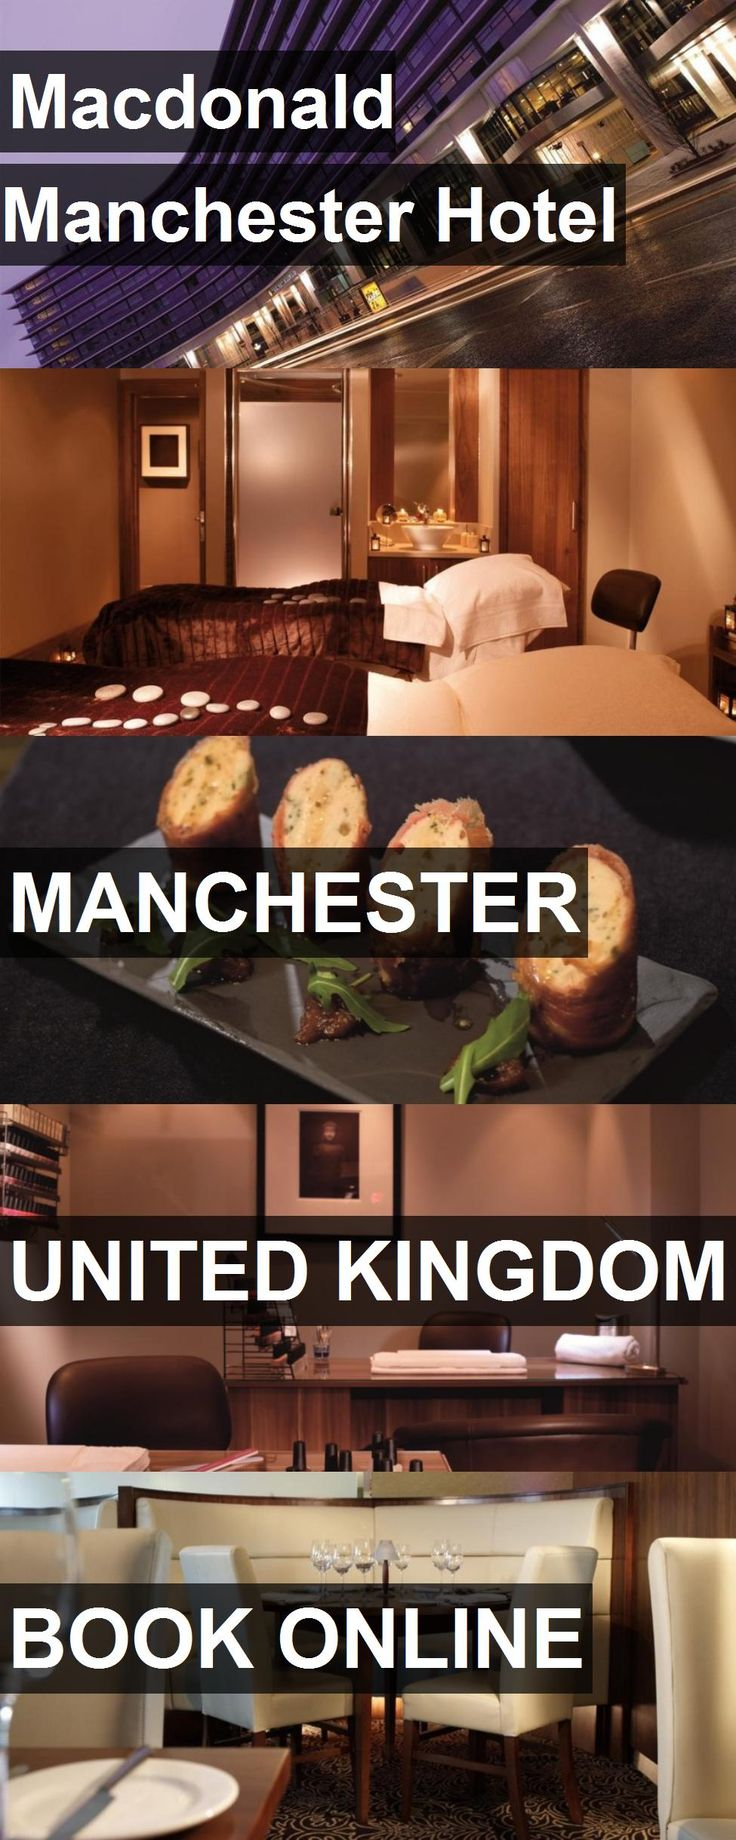 Macdonald Manchester Hotel in Manchester, United Kingdom. For more information, photos, reviews and best prices please follow the link. #UnitedKingdom #Manchester #travel #vacation #hotel